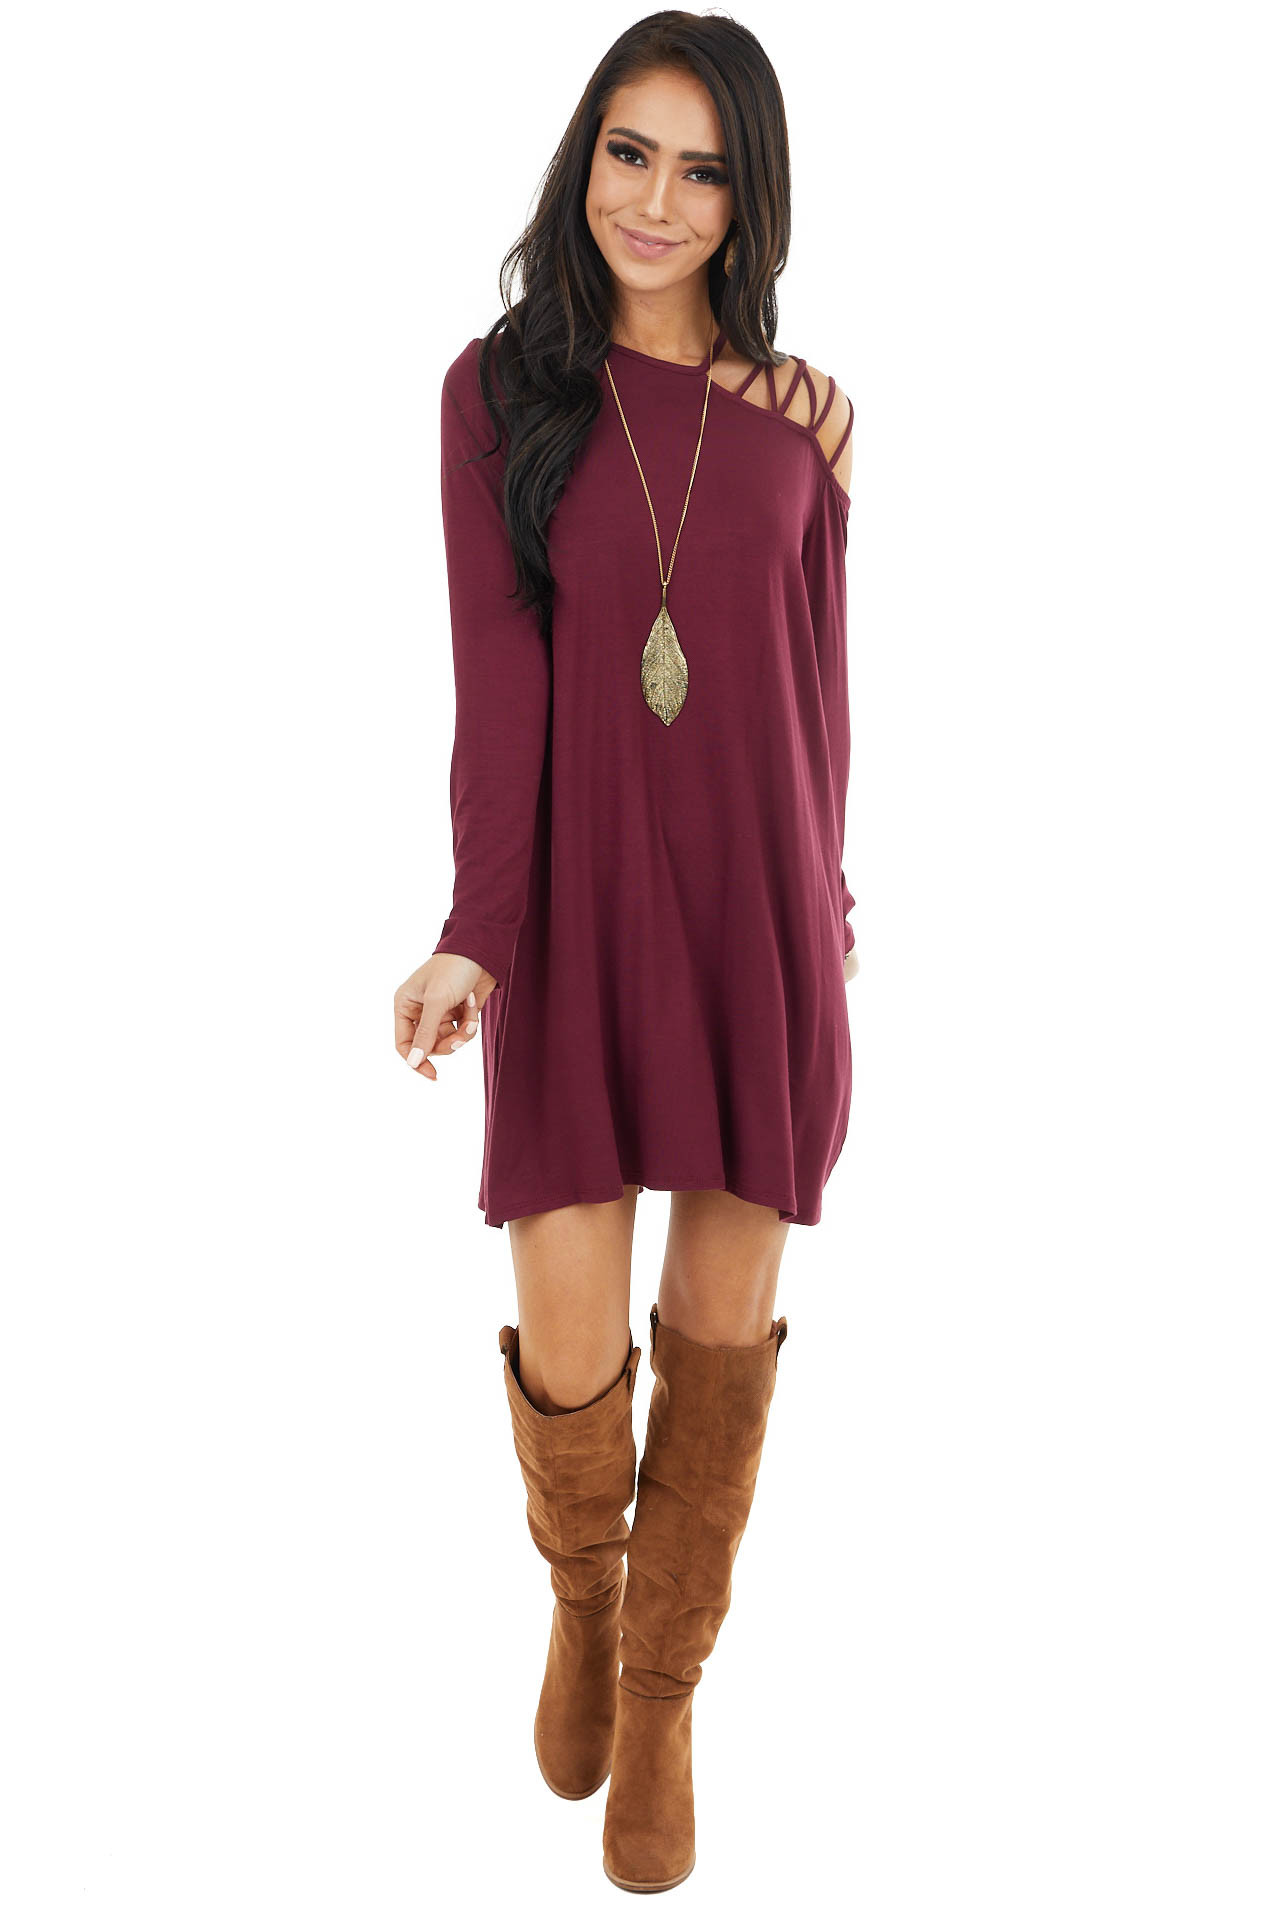 Wine One Cold Shoulder Mini Dress with Criss Cross Straps